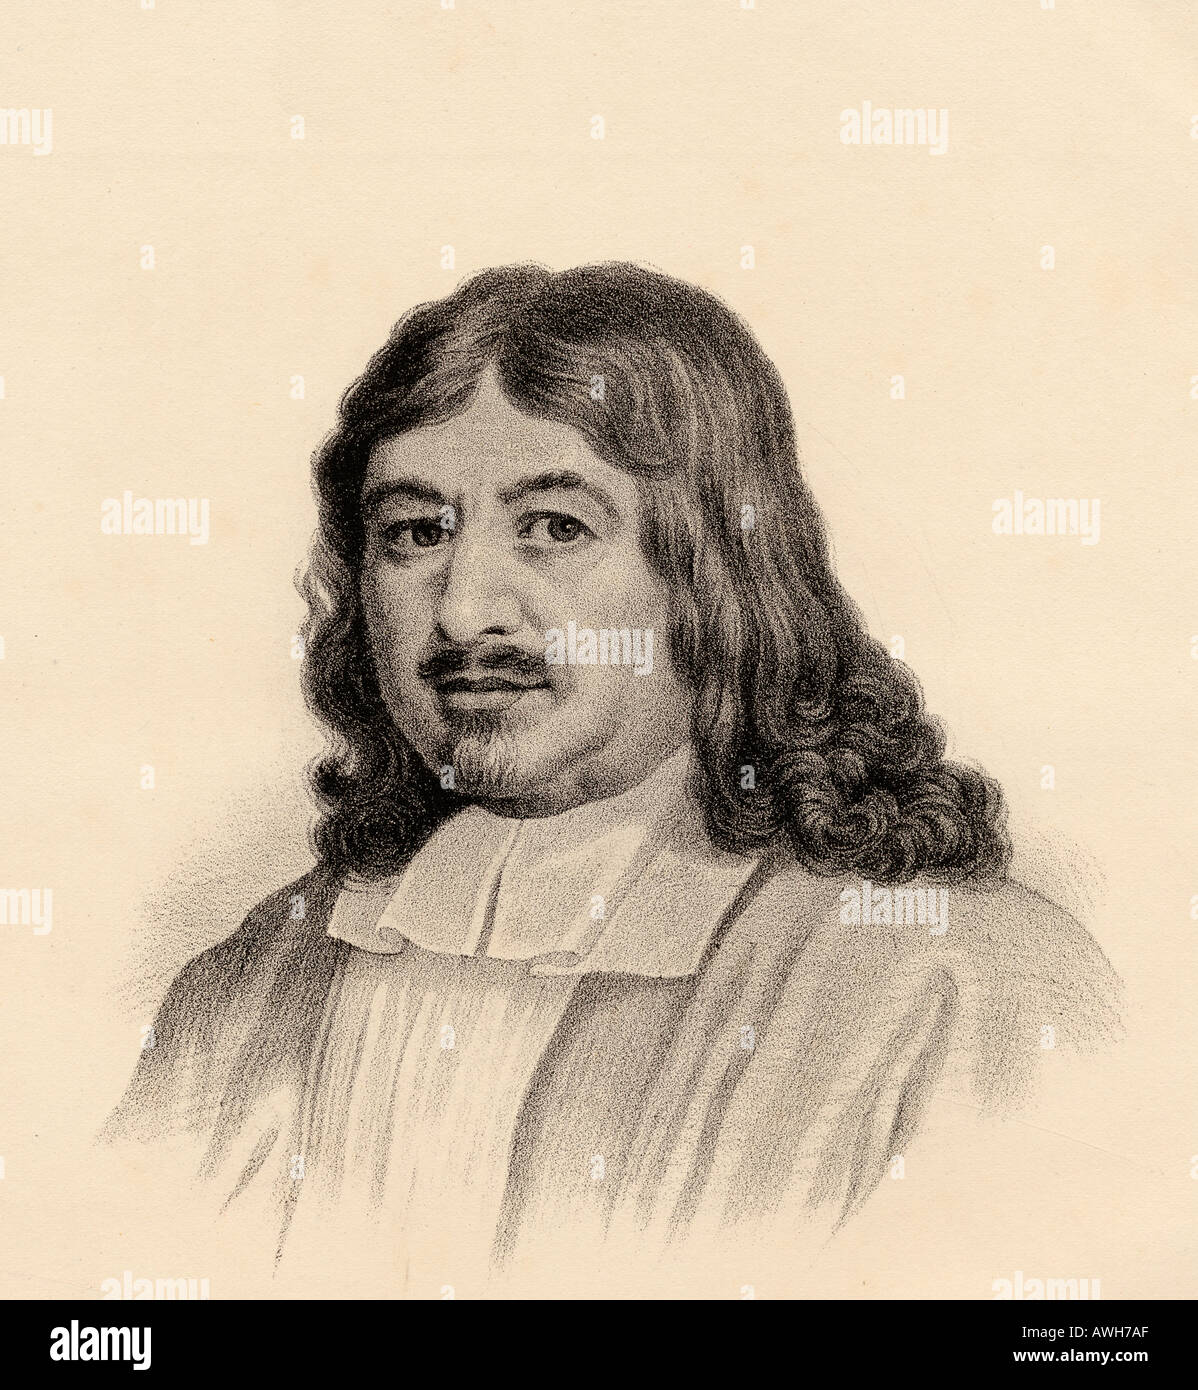 John Bunyan, 1628 - 1688.  English writer and Puritan preacher, author of The Pilgrim's Progress.  From the lithograph by W.H. McFarlane. - Stock Image